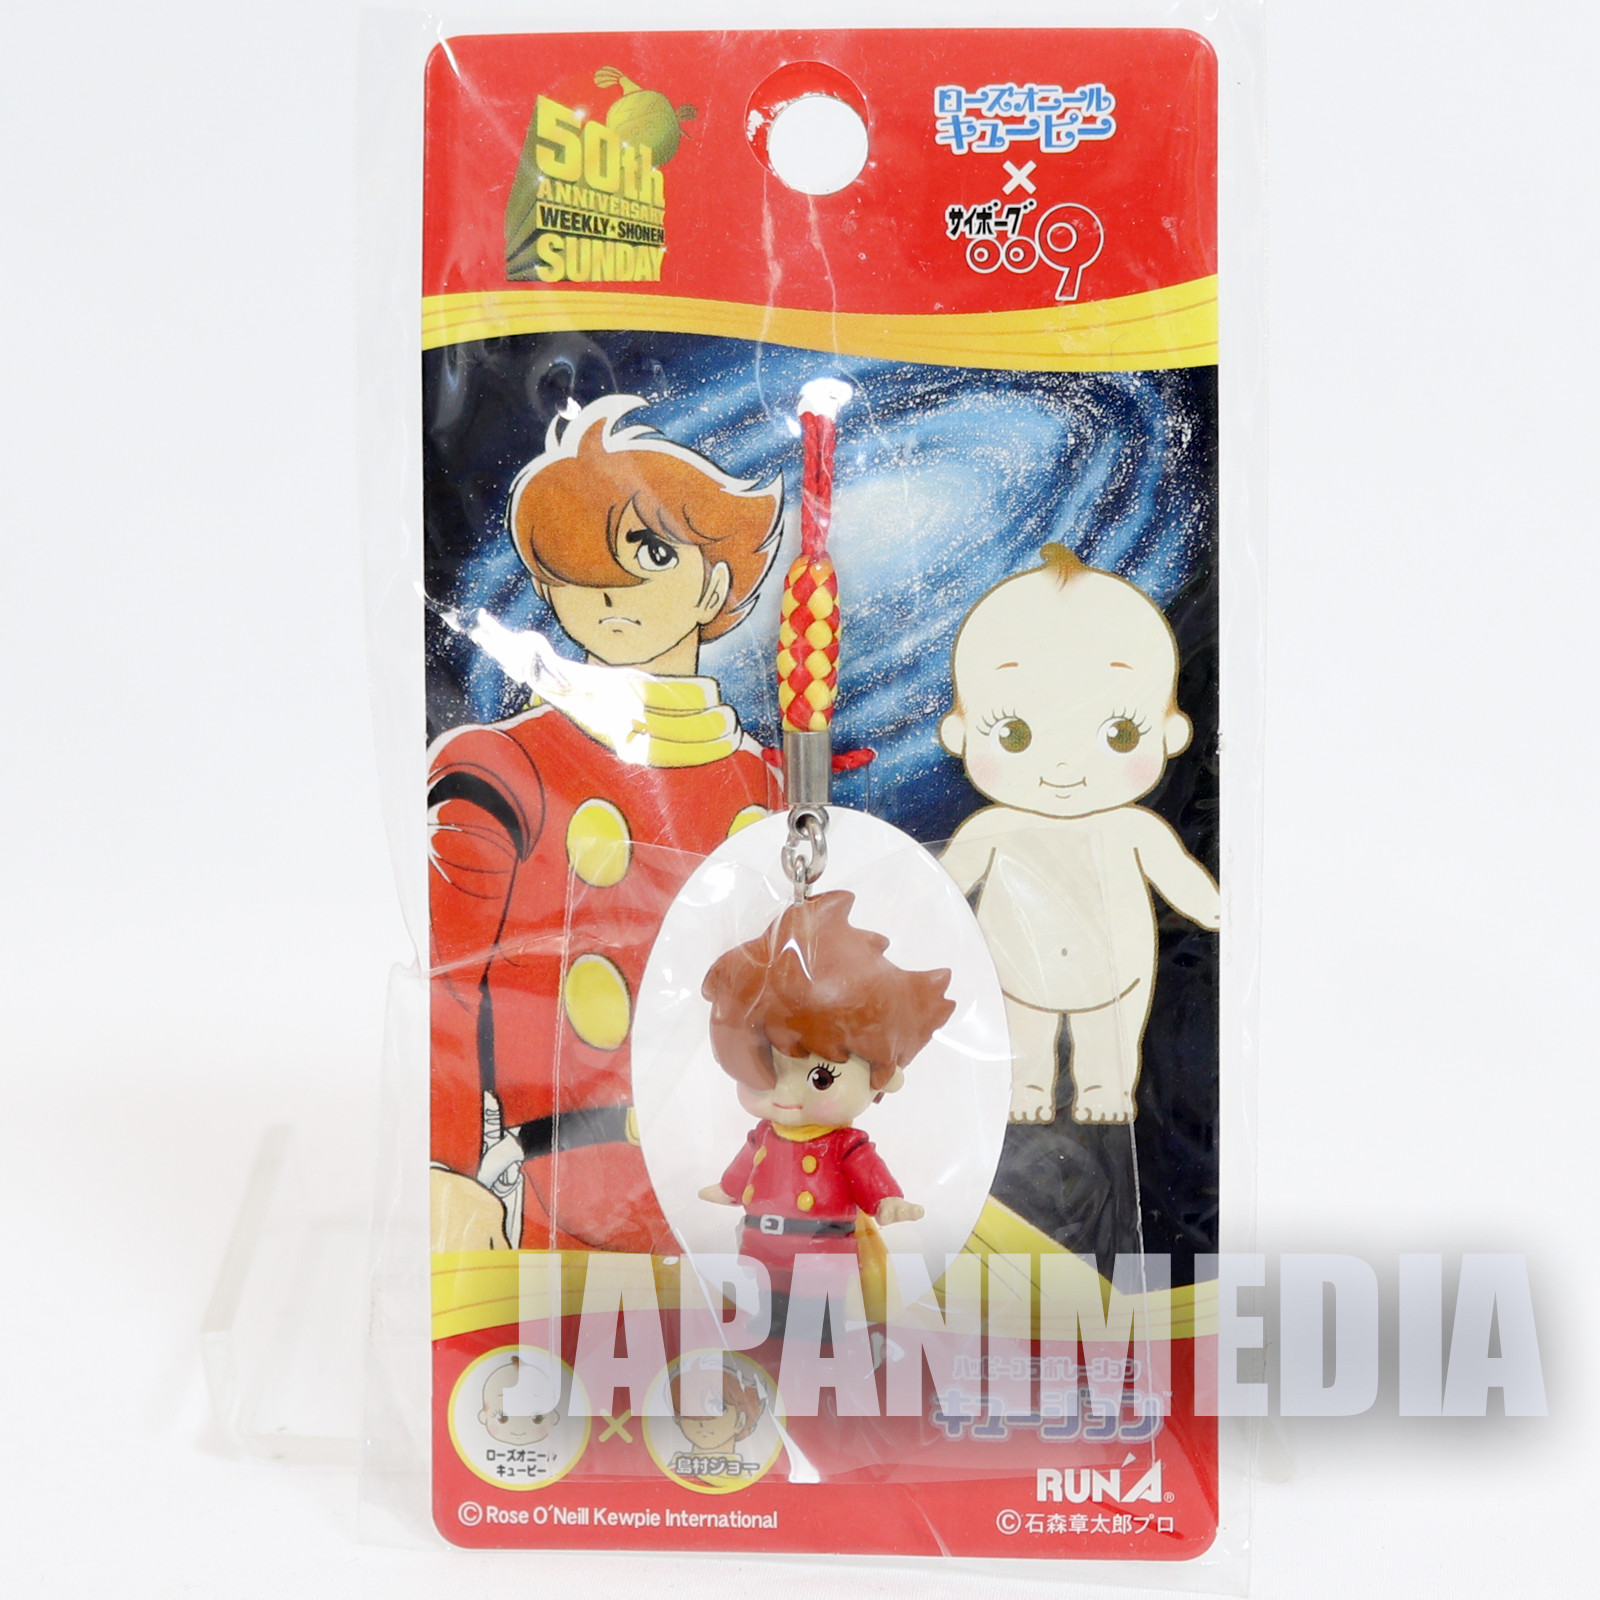 Cyborg 009 Joe Shimamura Rose O'neill Kewpie Kewsion Strap JAPAN ANIME MANGA